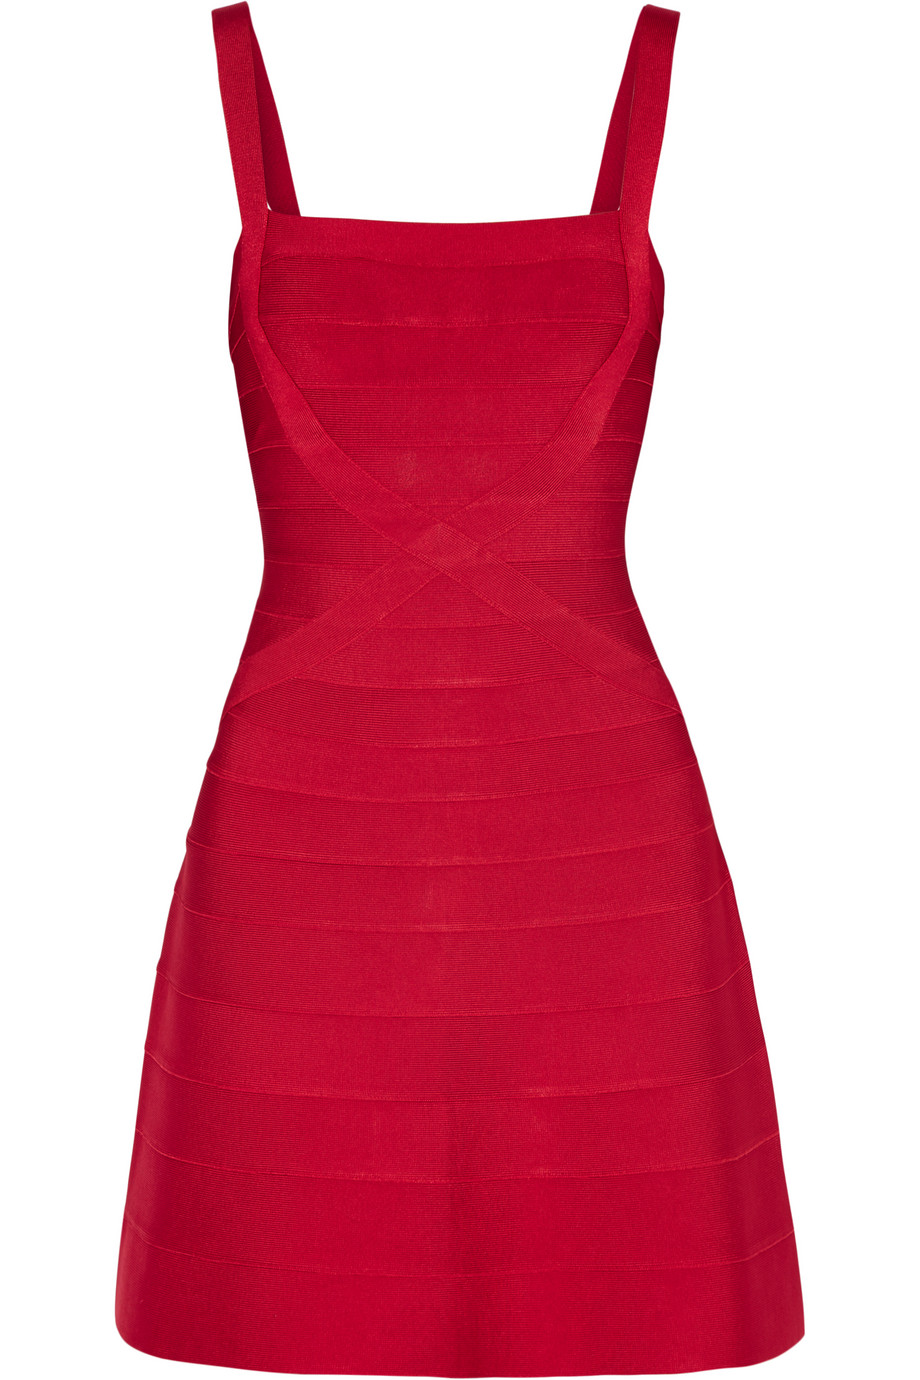 Hervé Léger Bandage Mini Dress, Red, Women's, Size: S